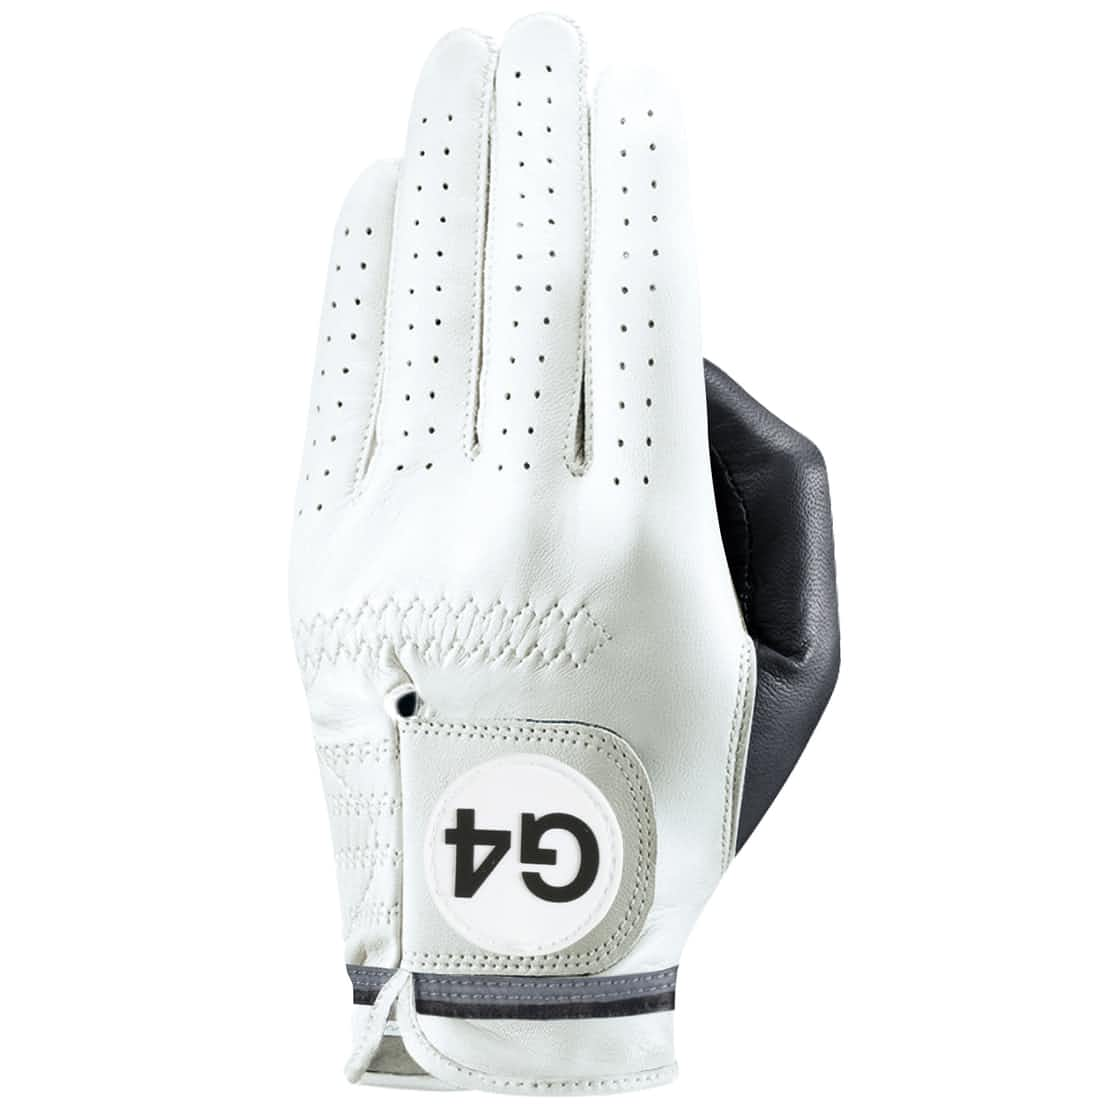 x TRENDYGOLF Mens G4 Competition Stripe Left Glove Off White - 2019